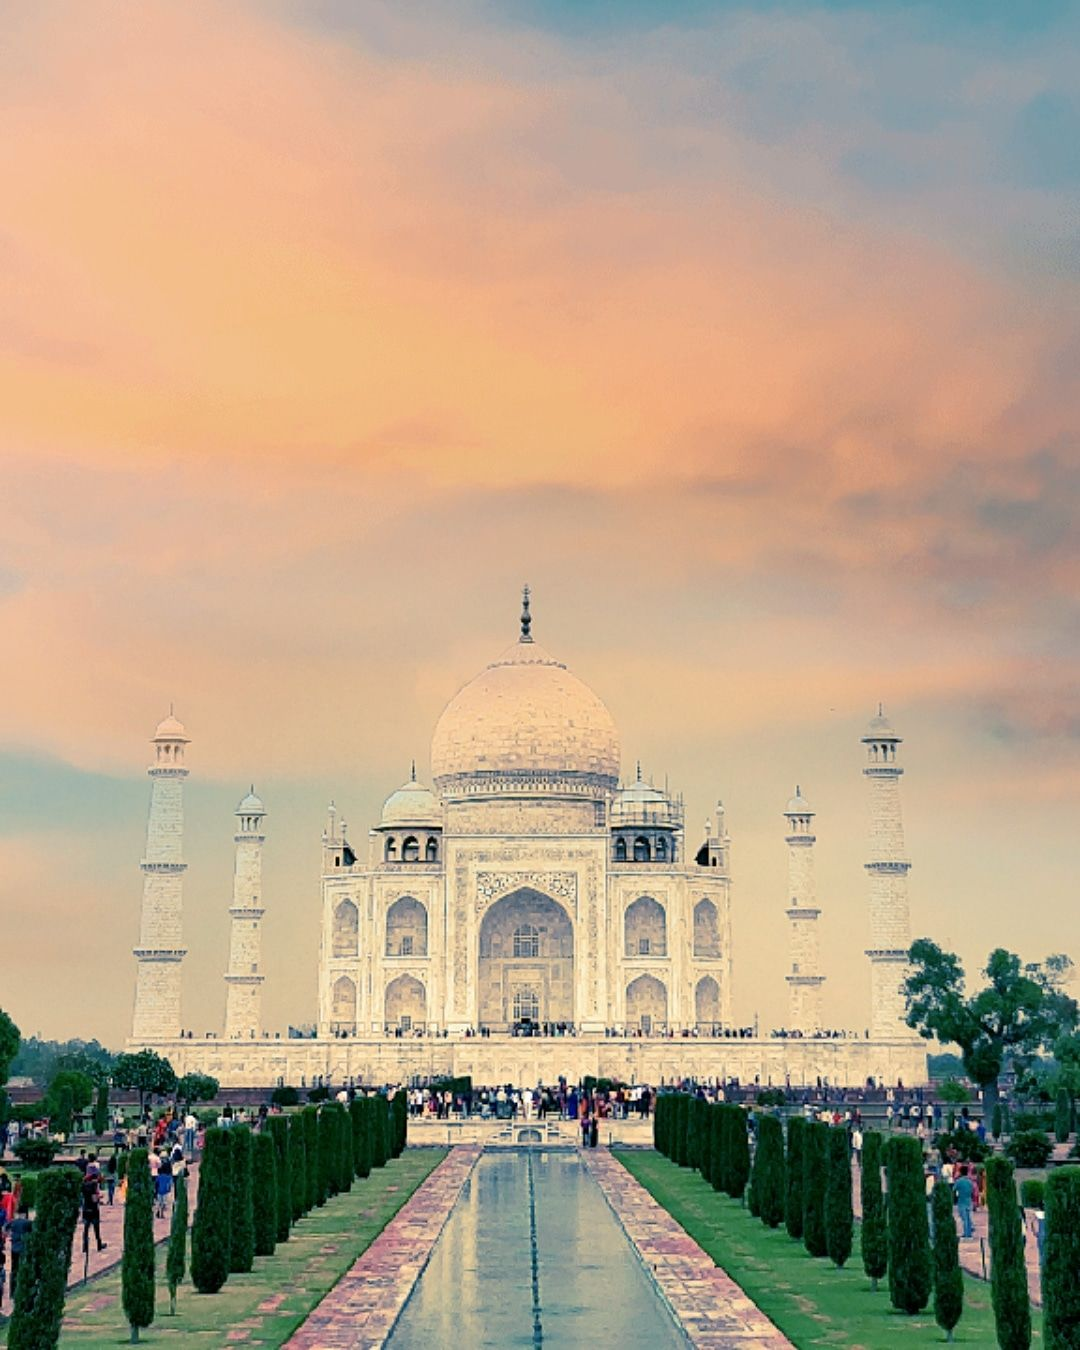 Photo of Taj Mahal By Darsh Golechha